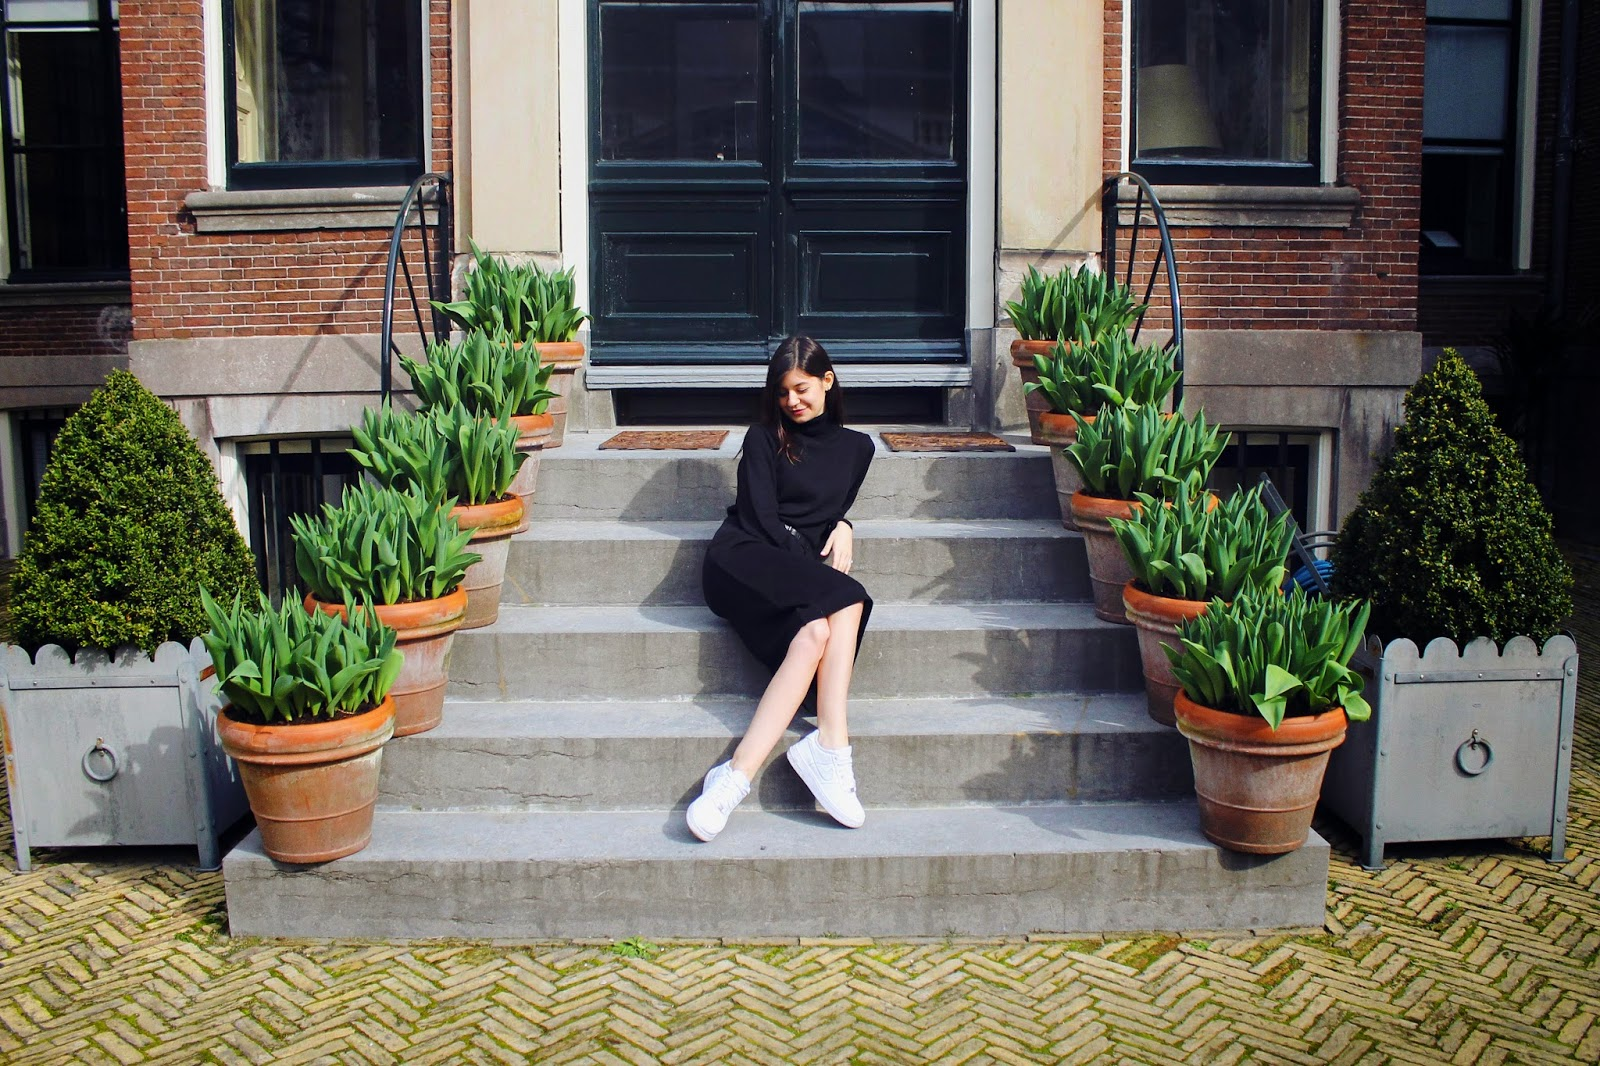 van loon, amsterdam, historic house, things to do in amsterdam, minimal style, minimalism